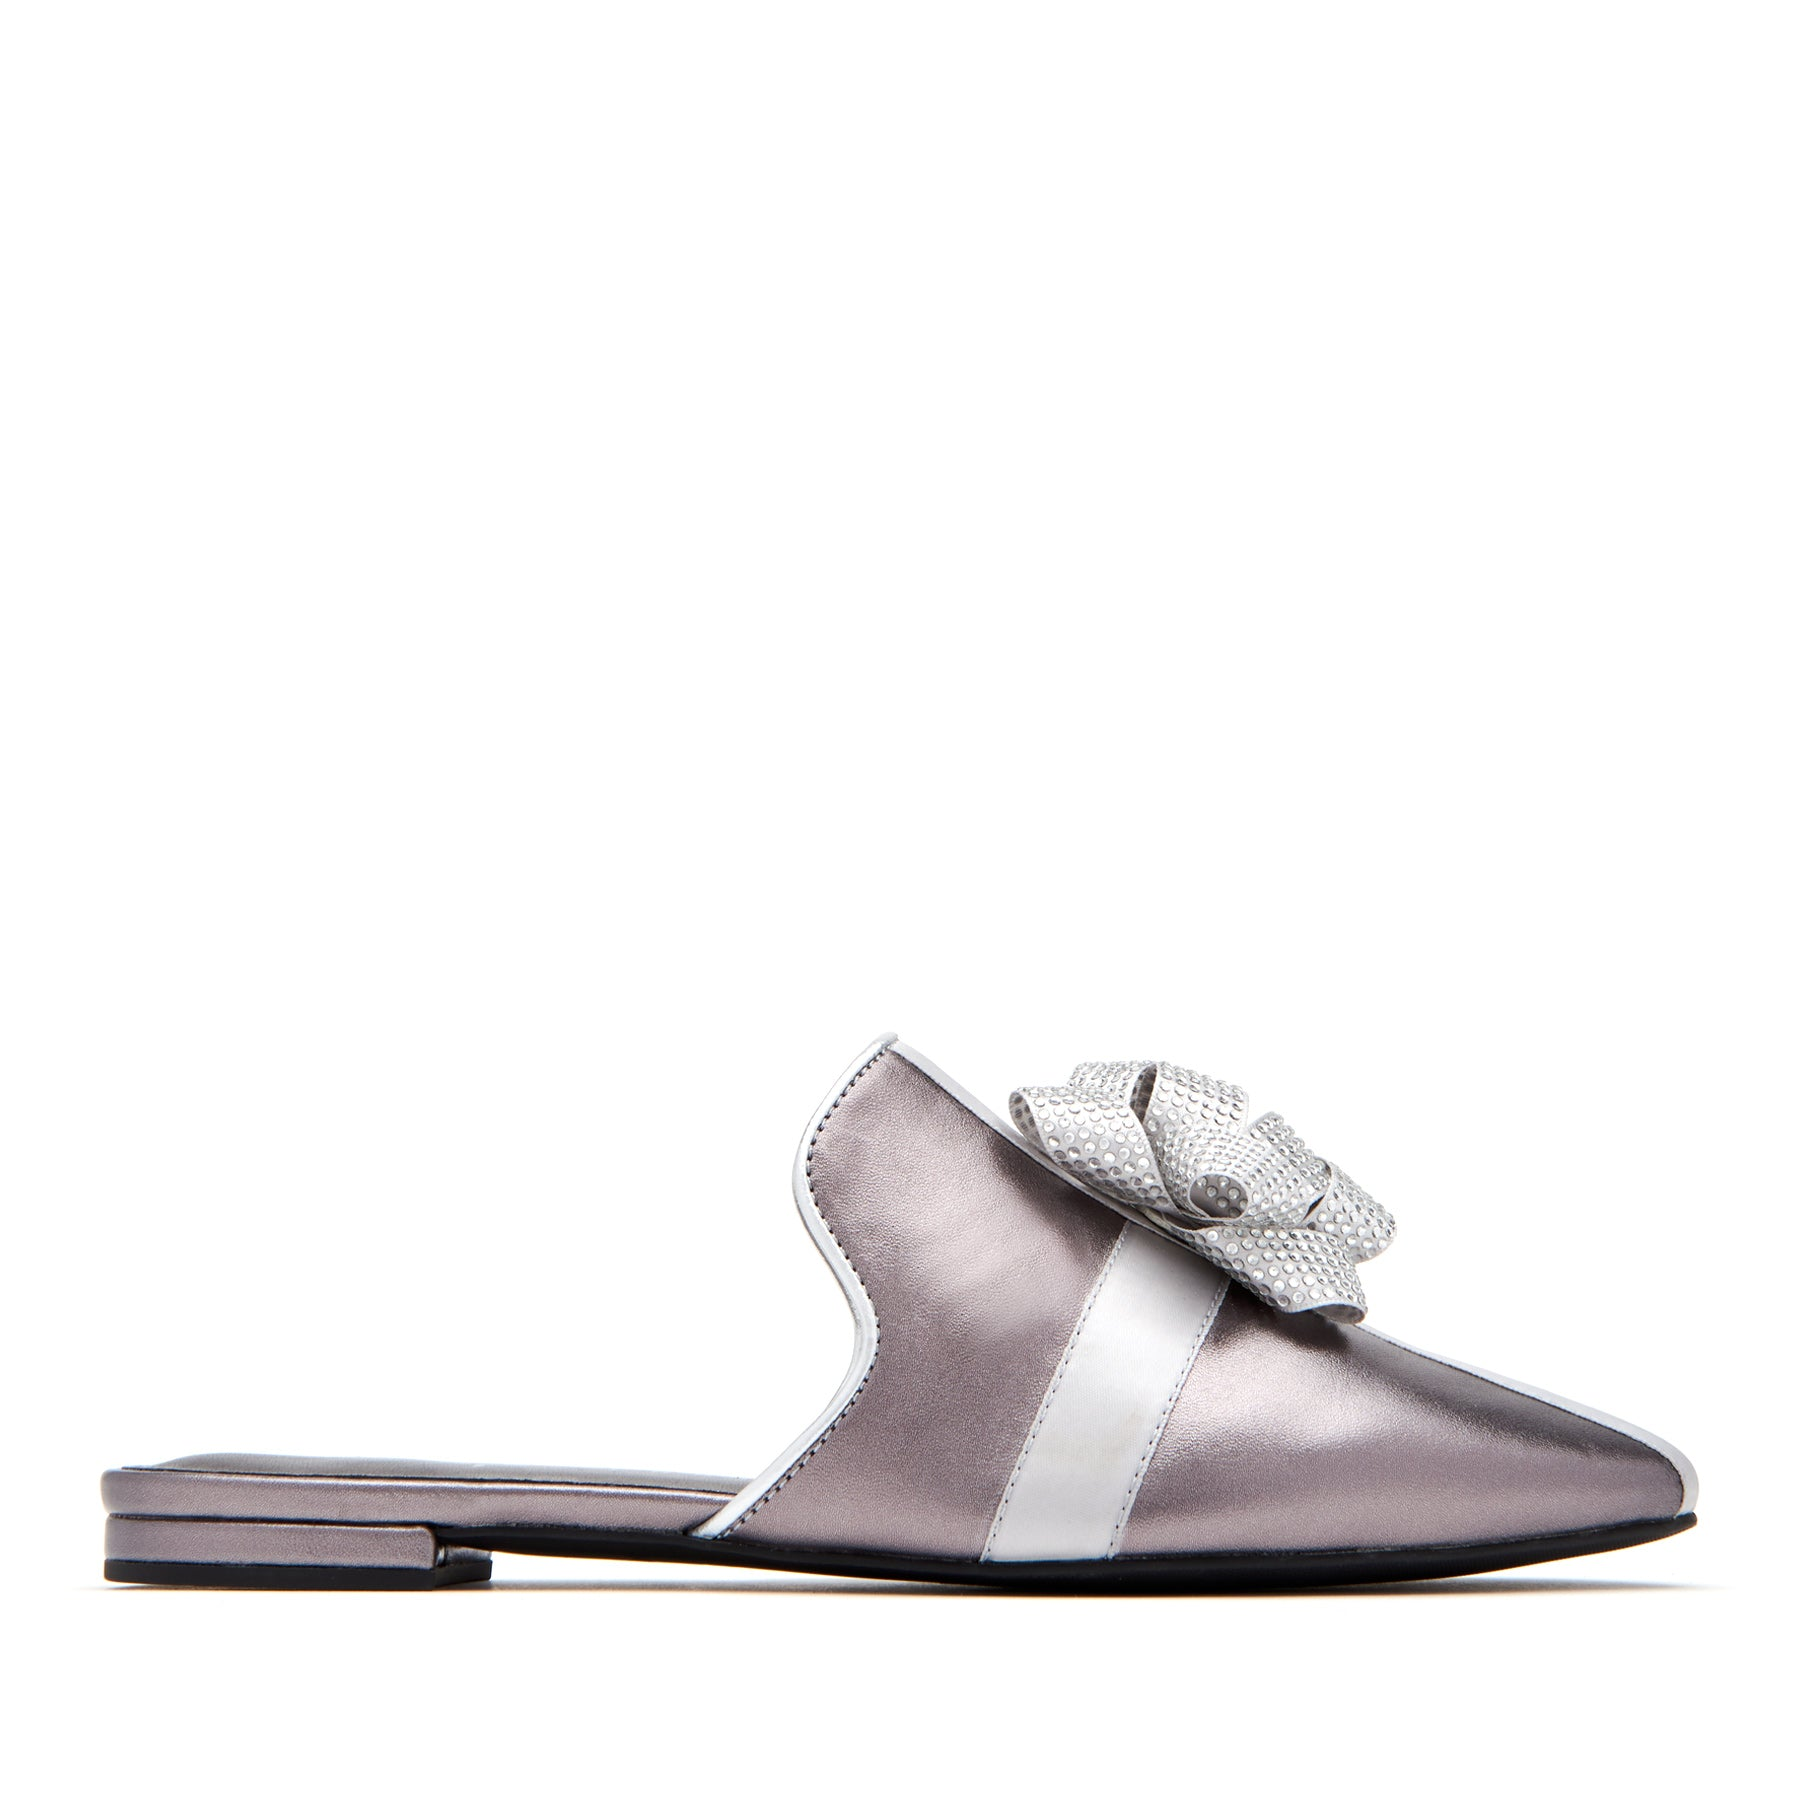 katy perry slip-on sandal in gunmetal size 5 | the stephanie